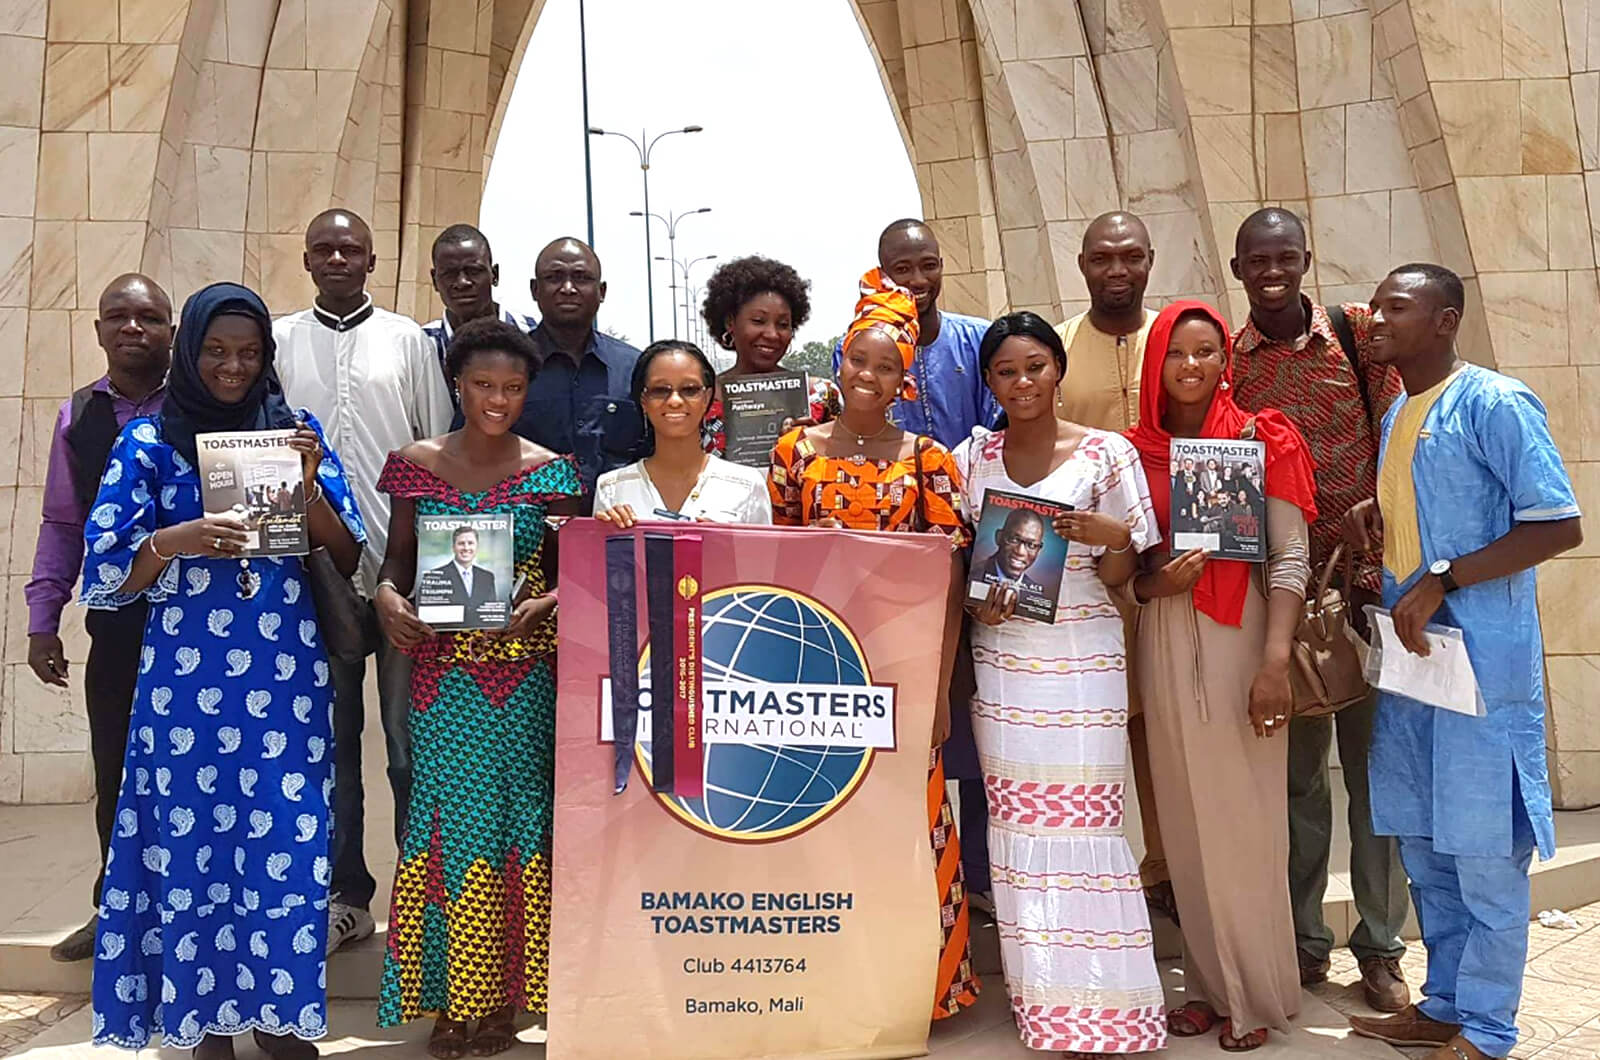 Bamako English Toastmasters club members gather under the Place de l'indépendance monument in Bamako, Mali.